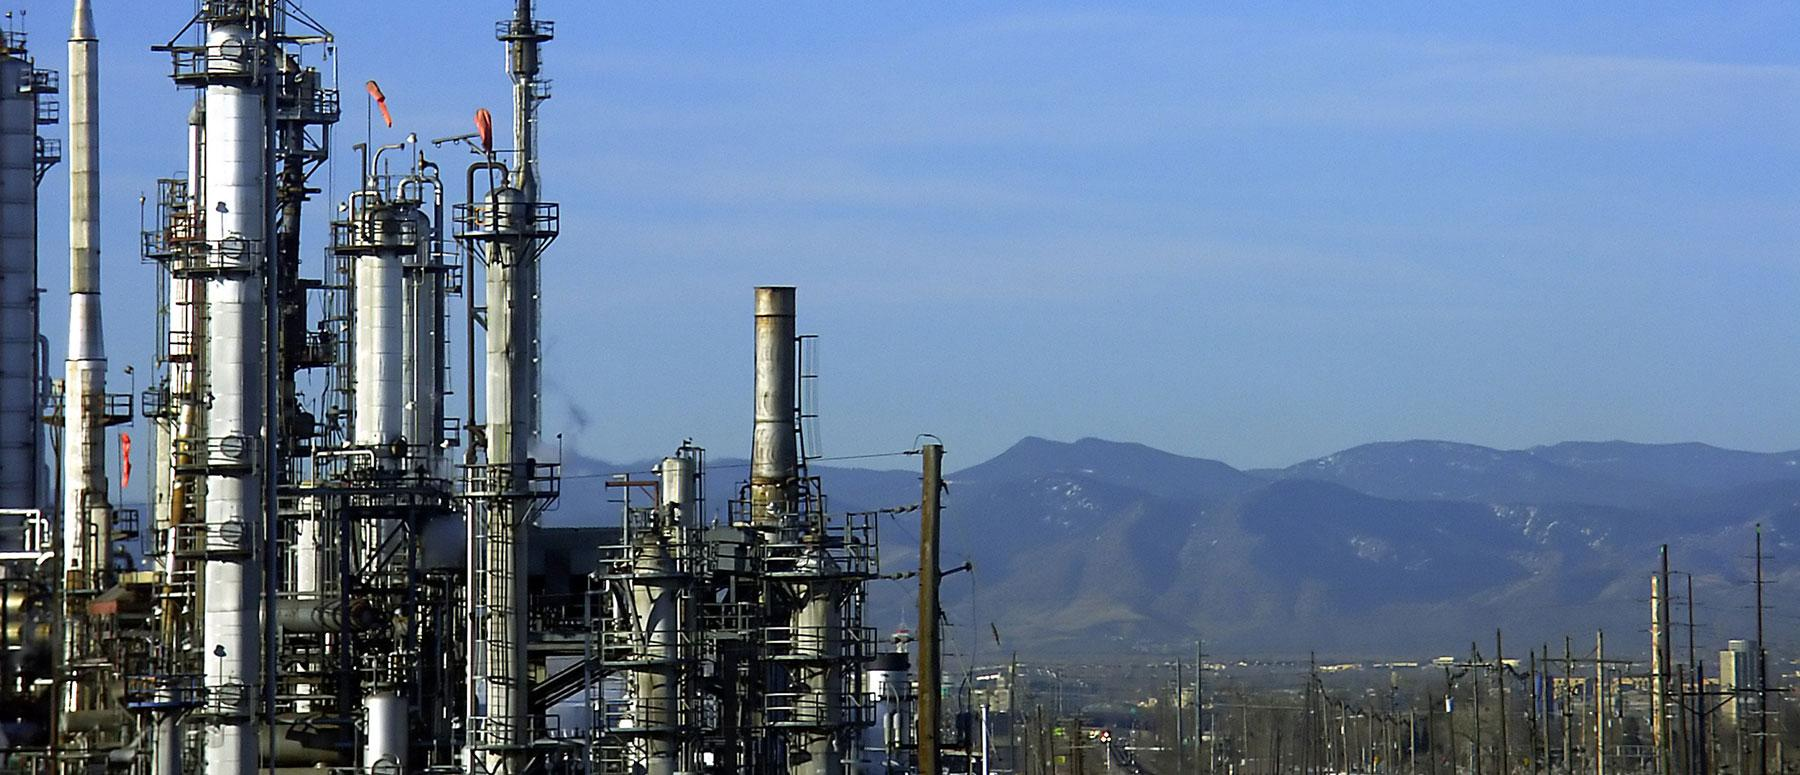 Refineries Engineering Environmental